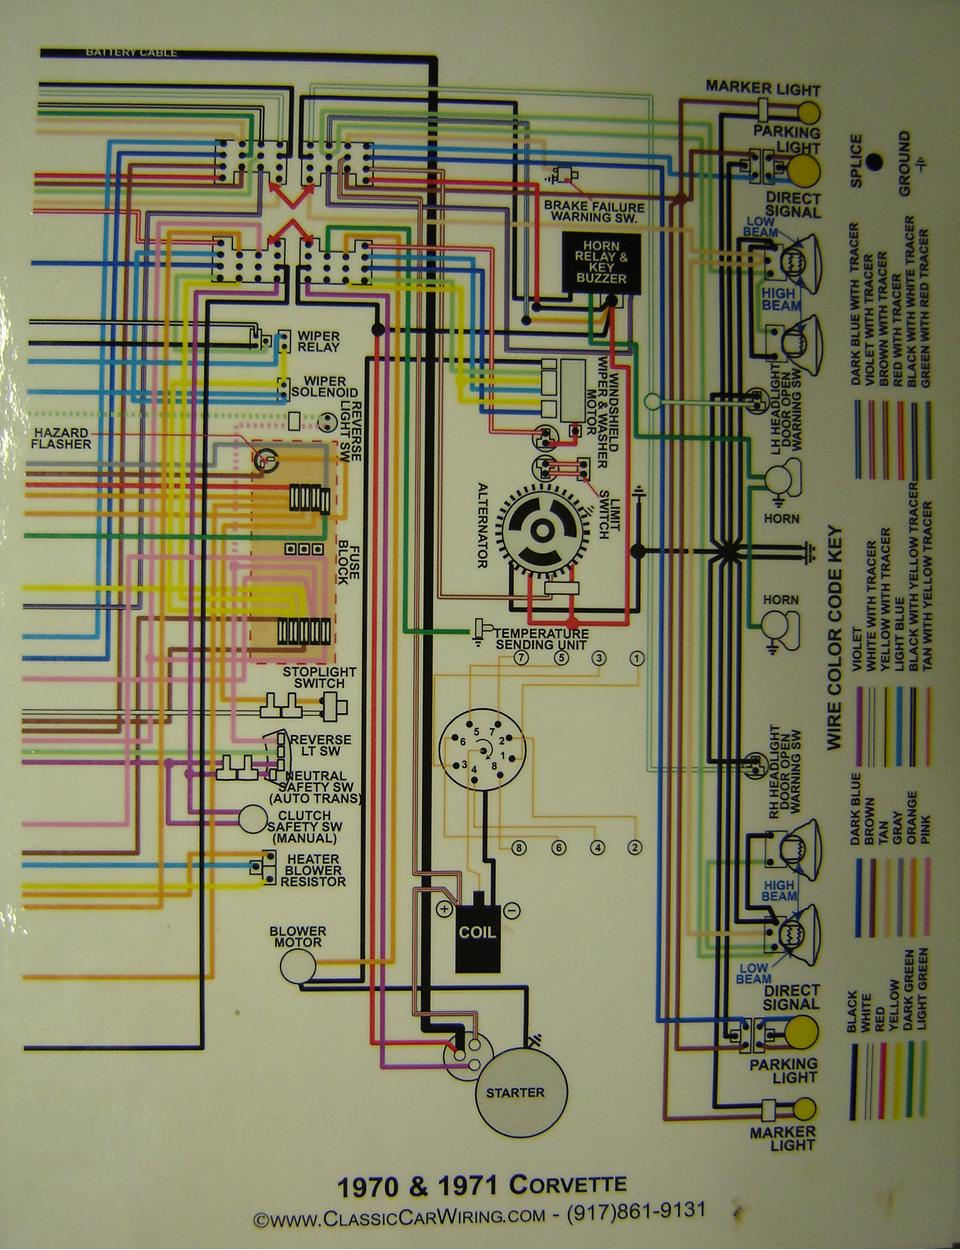 1970 71 corvette color wiring diagram B 1984 corvette wiring diagram free 1986 corvette wiring diagrams 1969 corvette wiring schematic at honlapkeszites.co